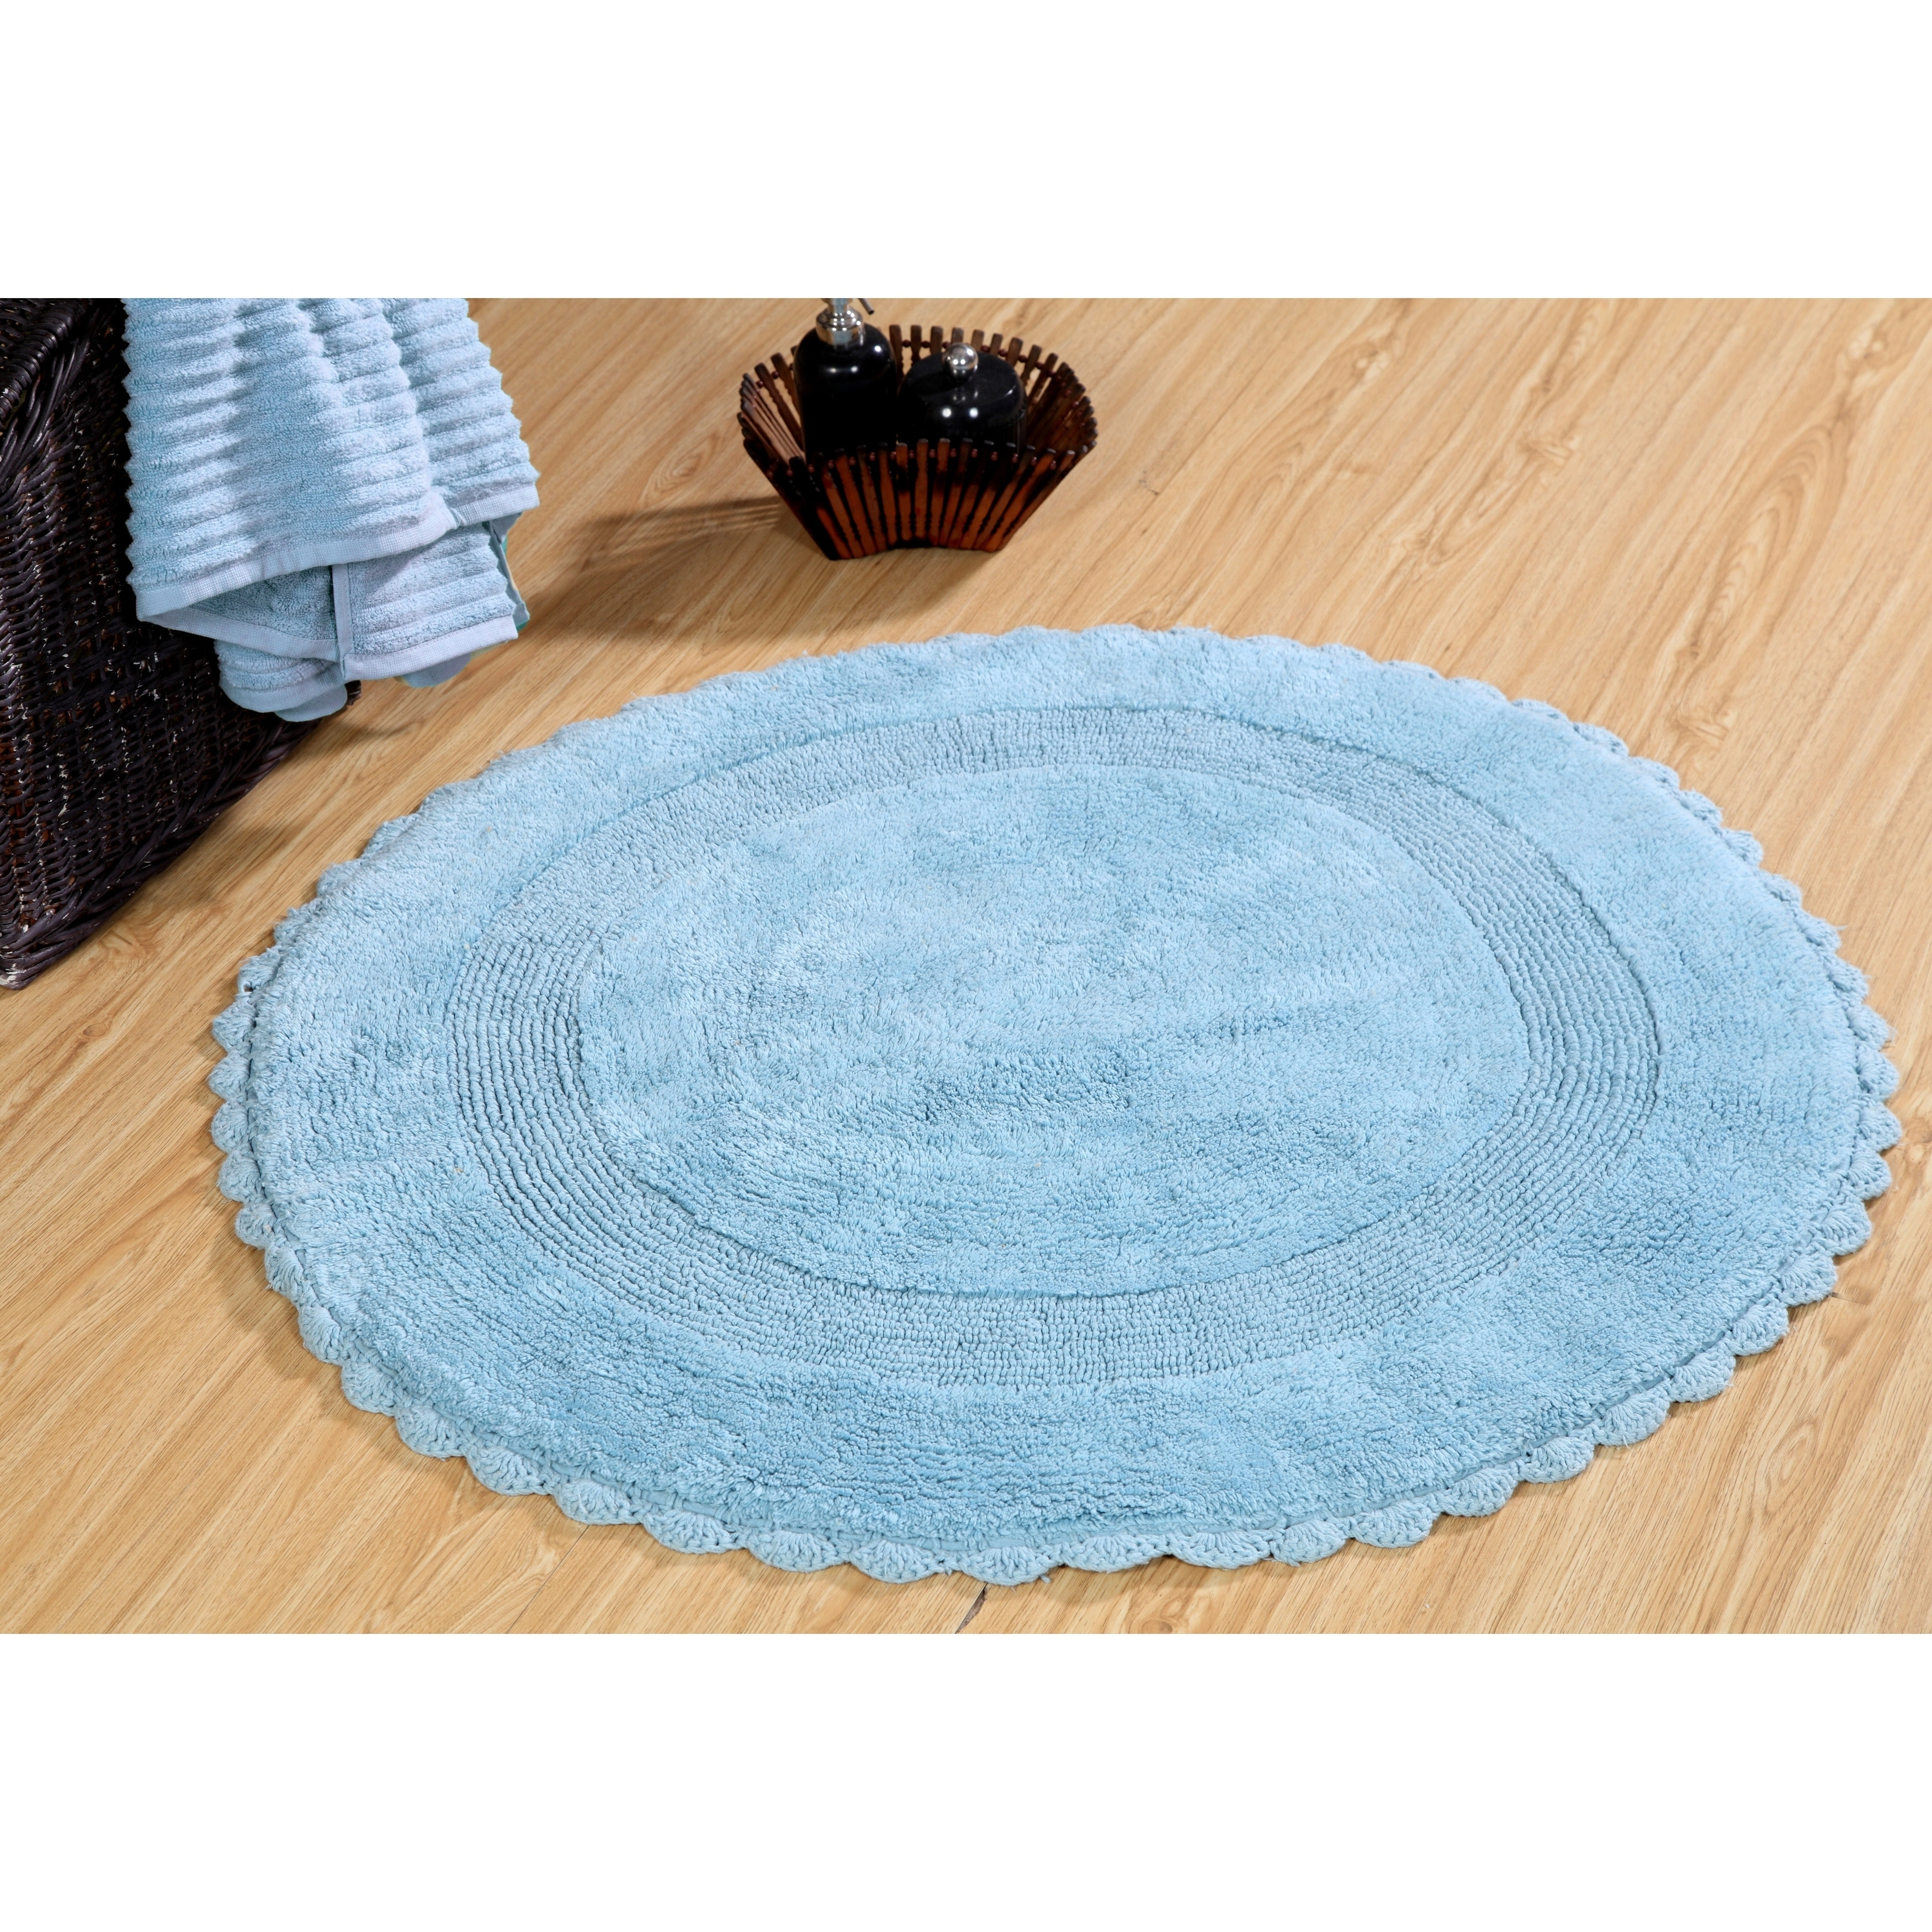 36 Inches Round Cotton Bath Rug Reversible Hand Knitted Crochet Border On Sale Overstock 11352866